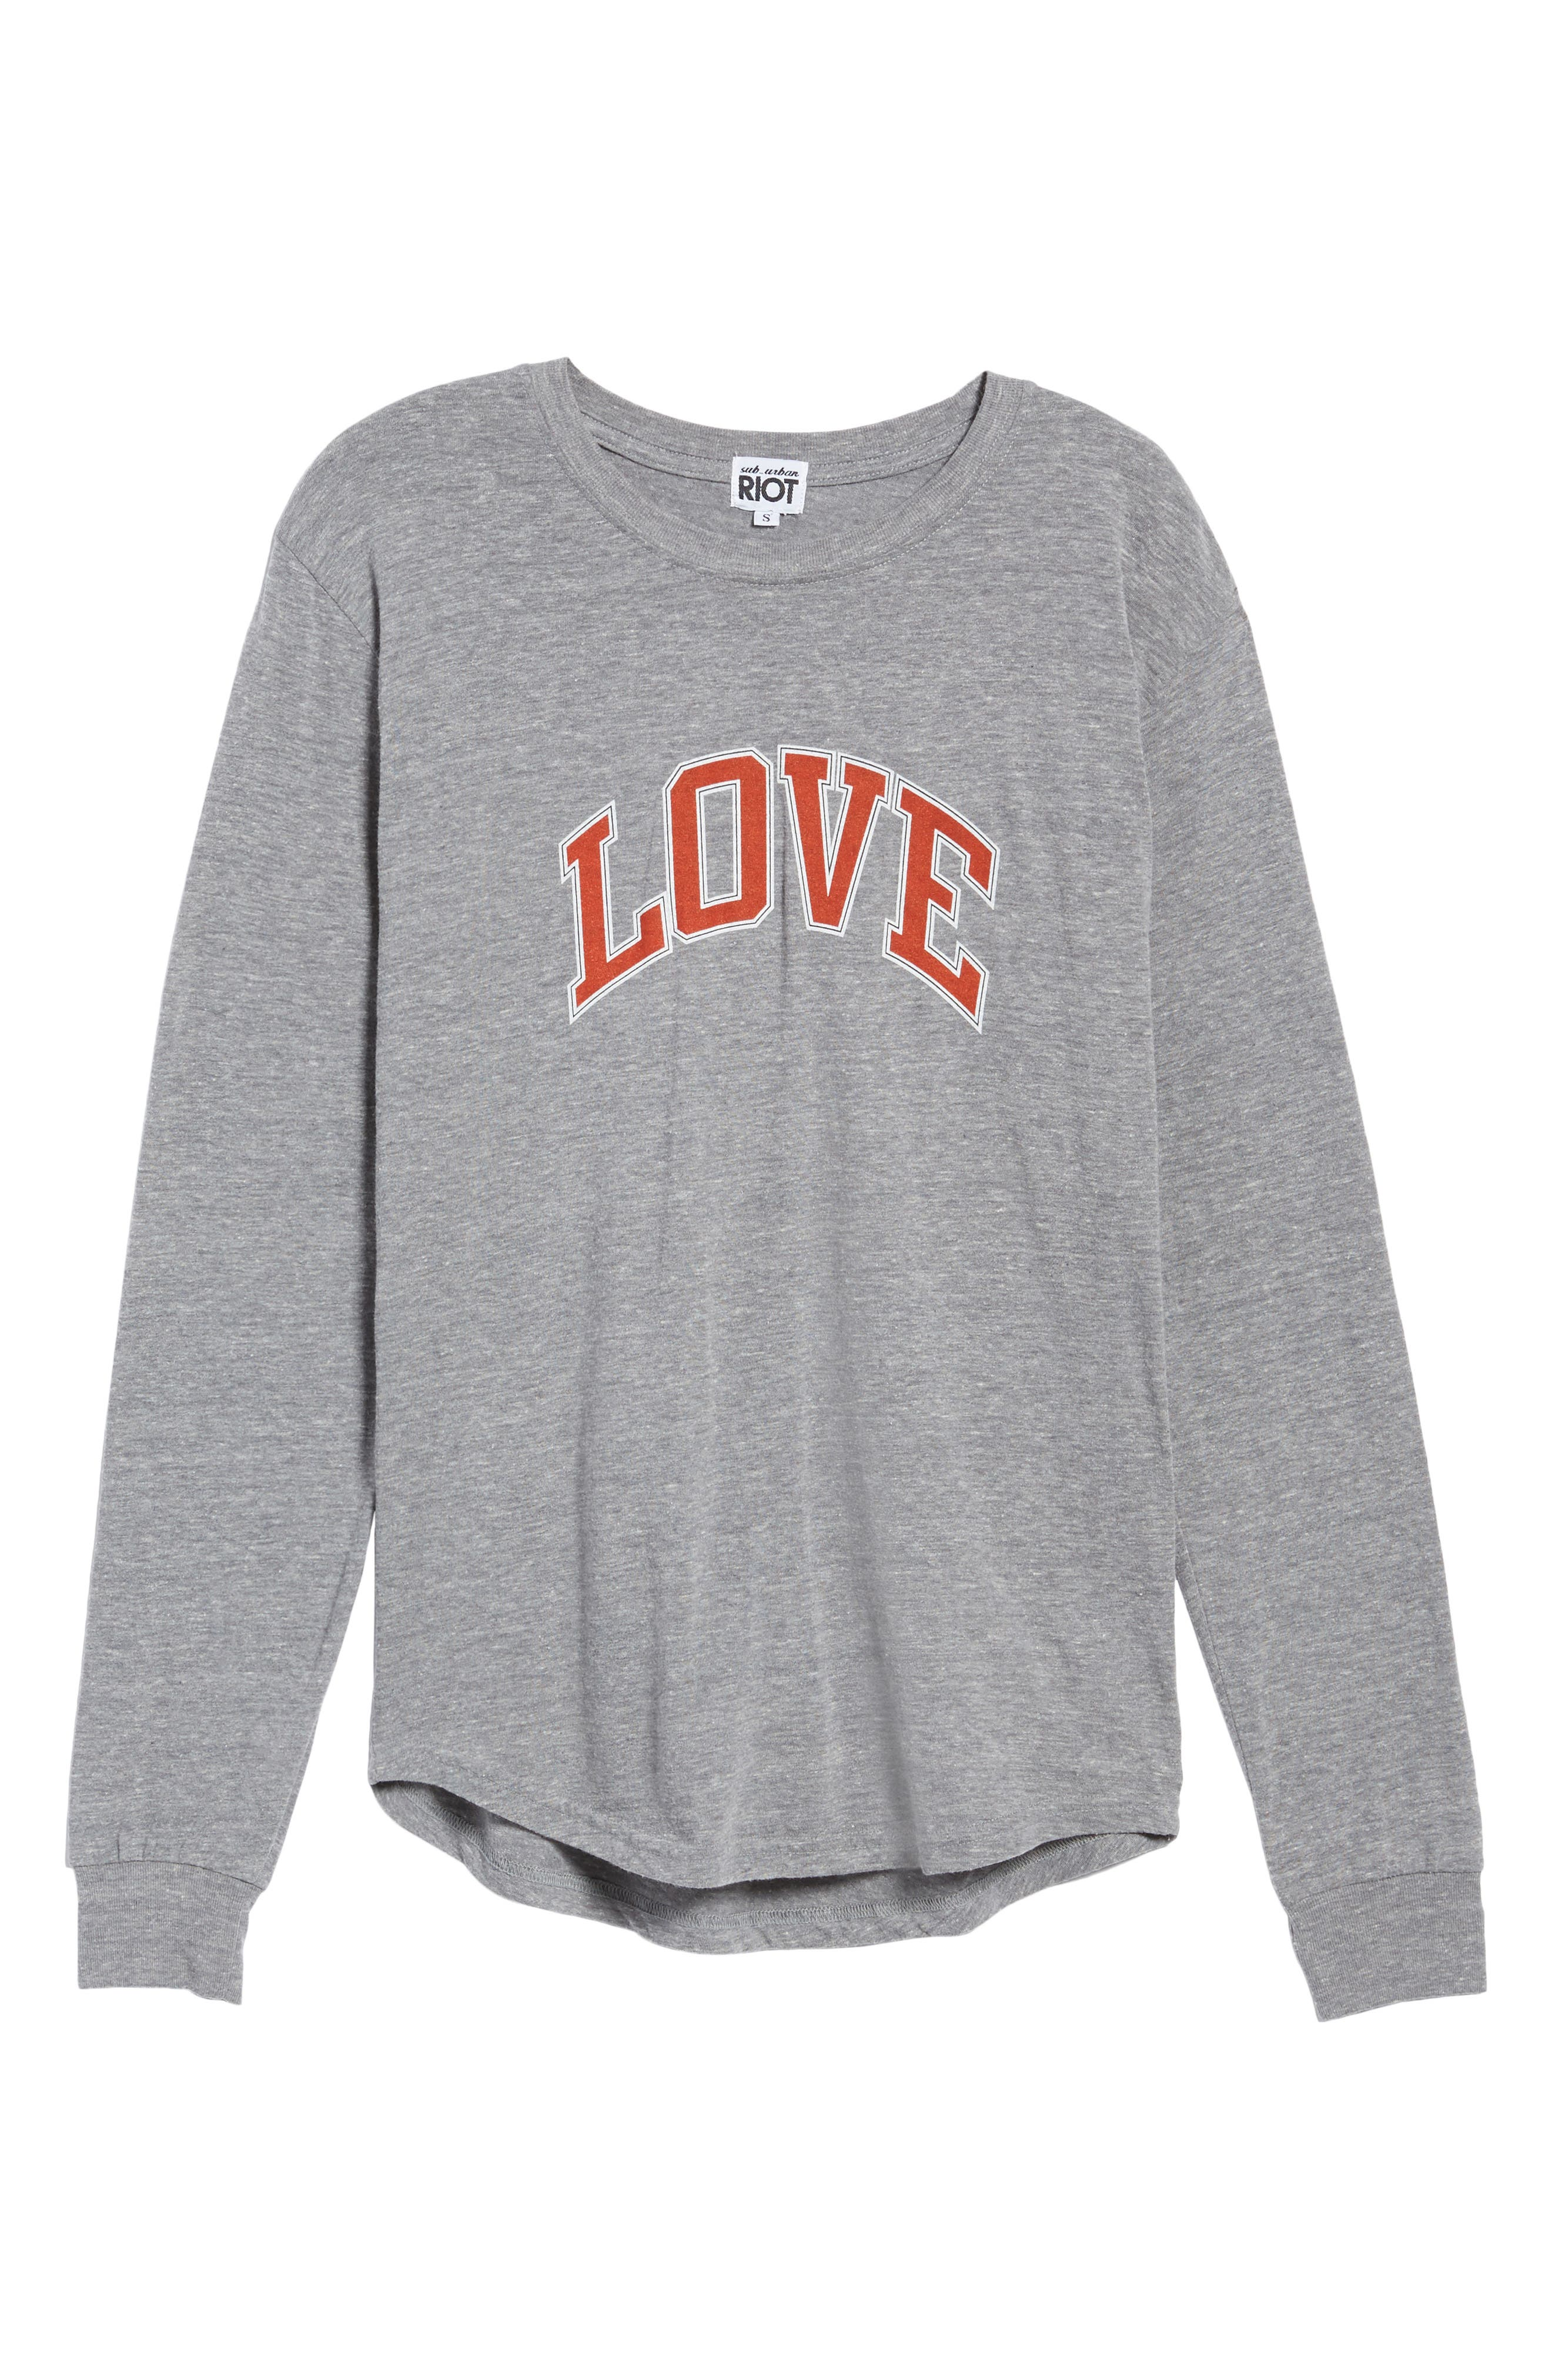 Love Camp Tee,                             Alternate thumbnail 6, color,                             050